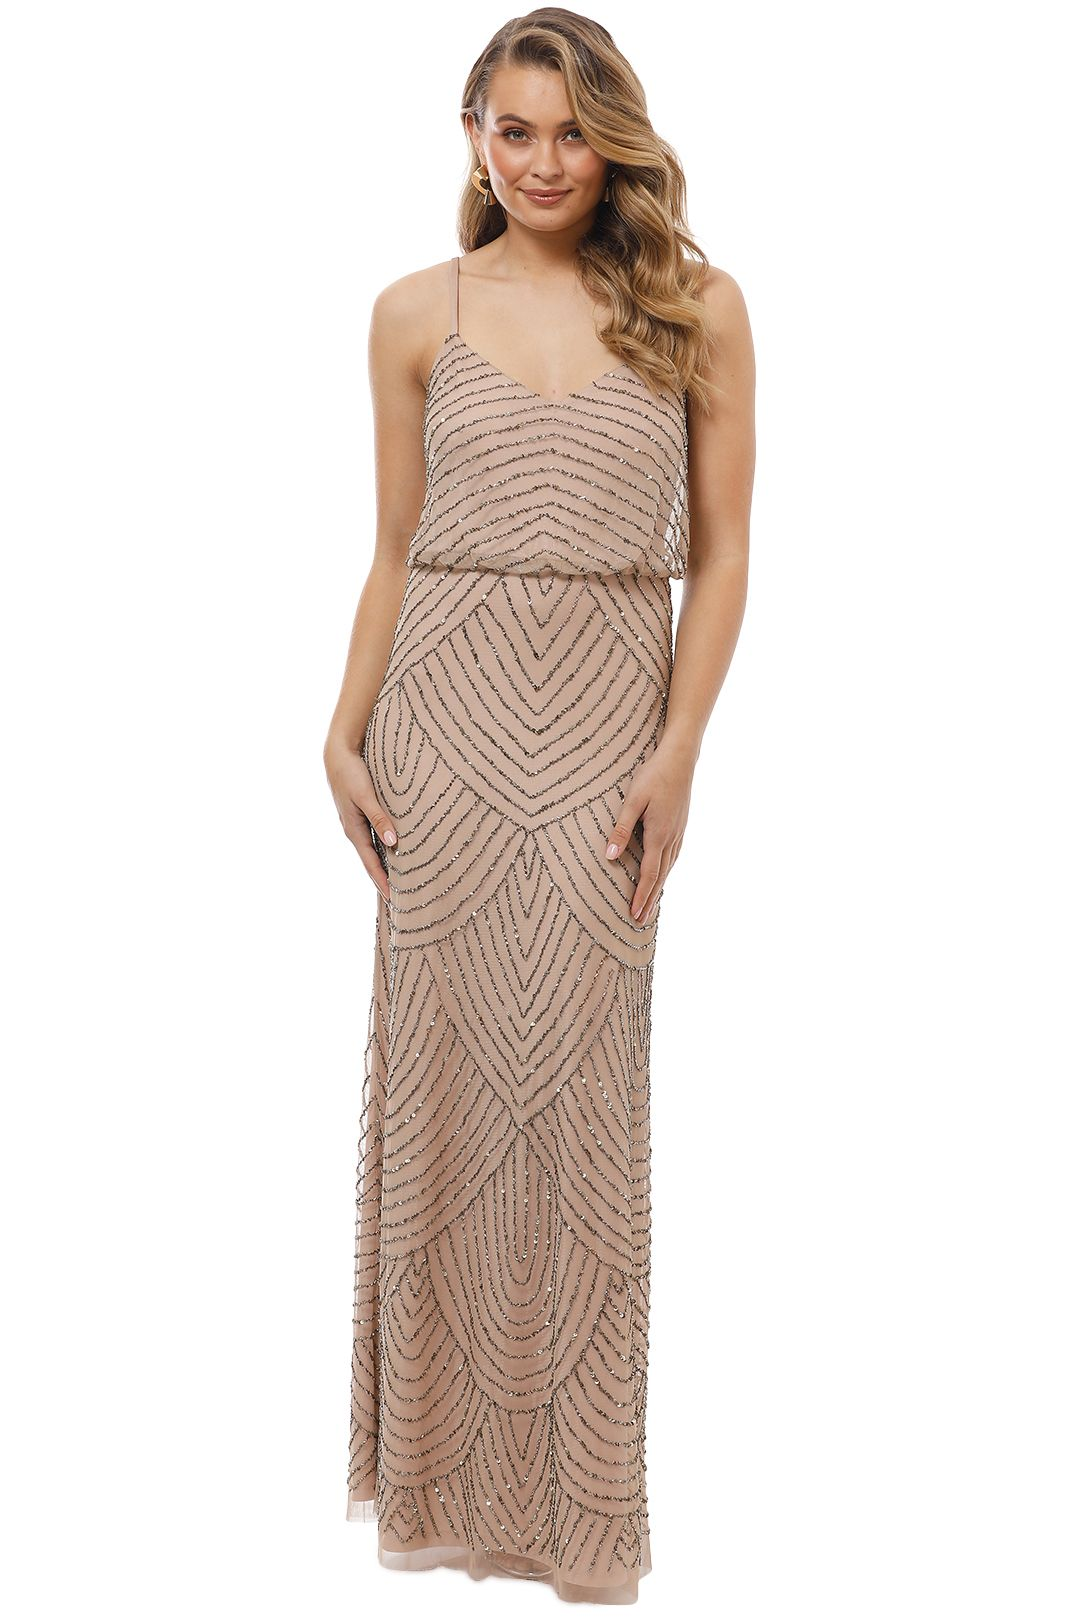 Adrianna Papell - Art Deco Beaded Blouson Gown - Taupe Pink - Front